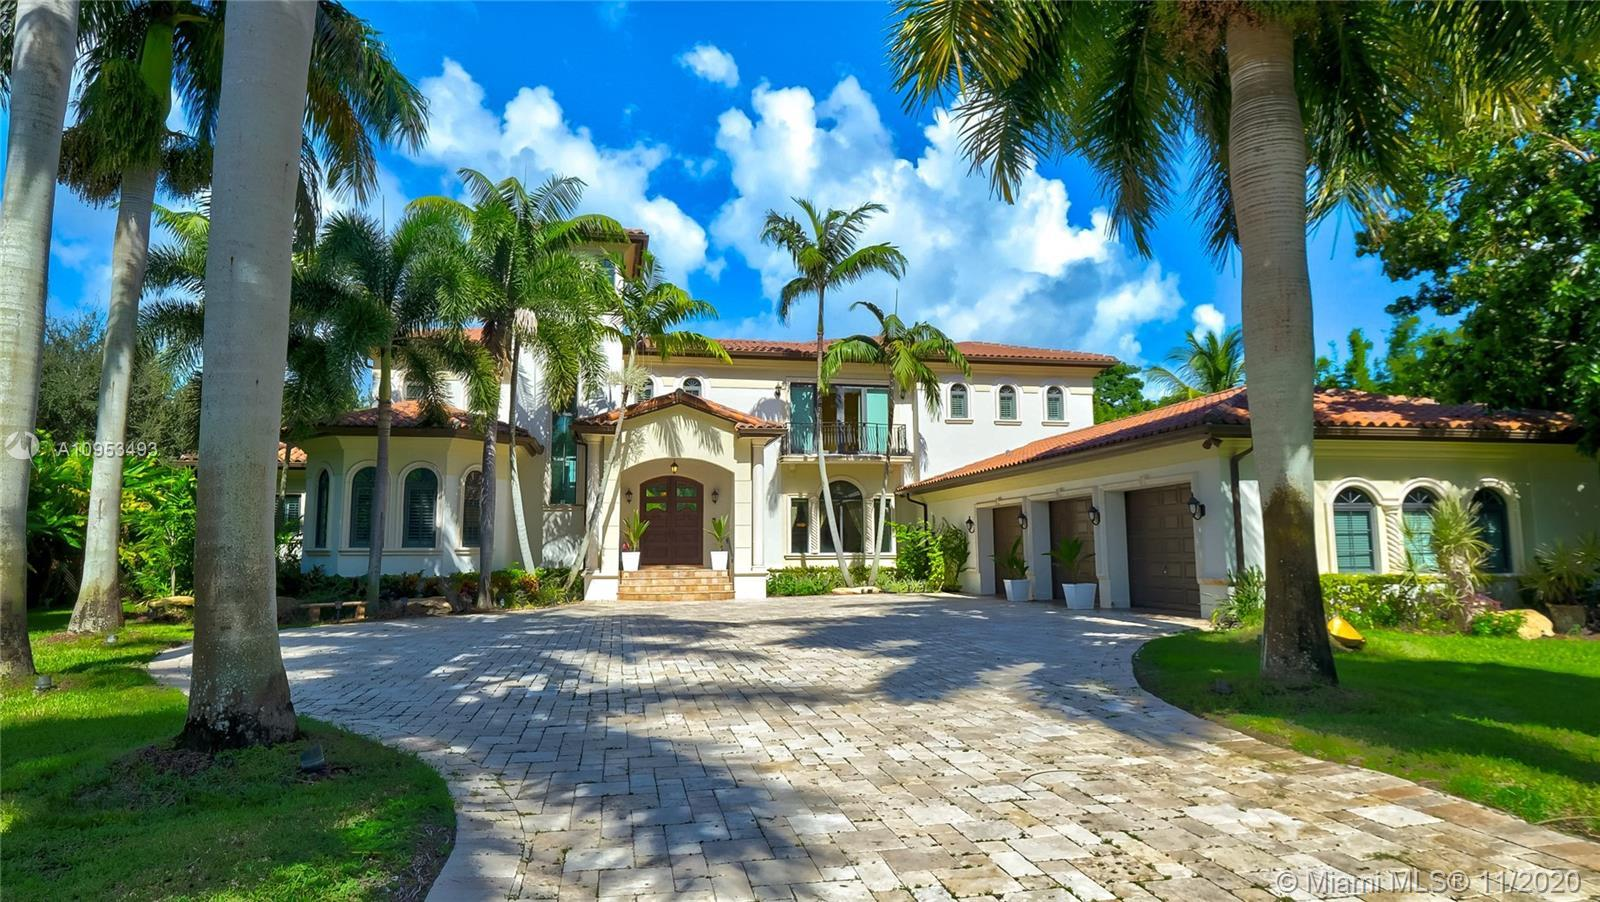 Luxury, elegance, and comfort are carried throughout this grand Mediterranean masterpiece. With a gr